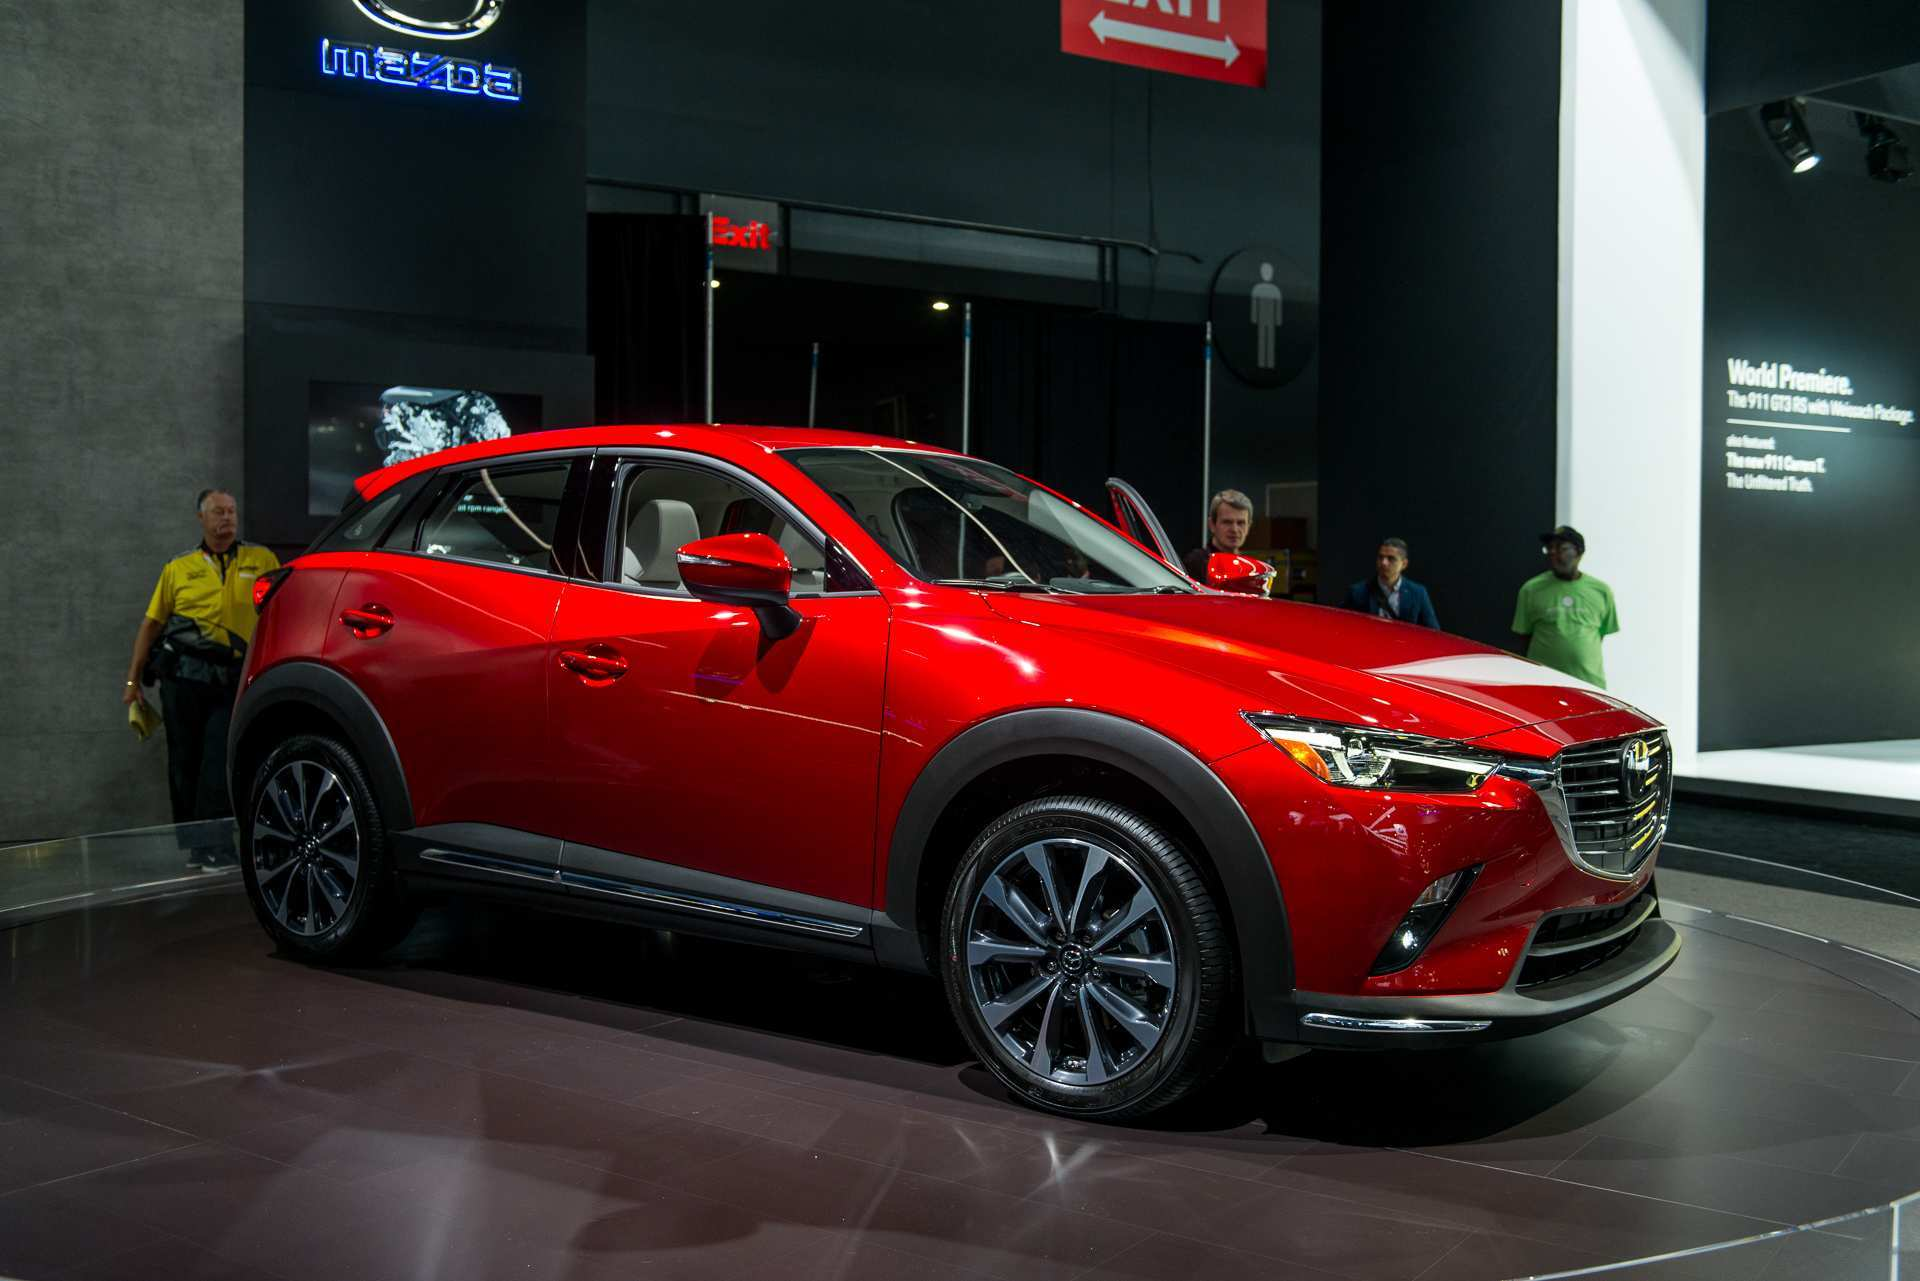 58 Gallery of Mazda Auto 2020 Rumors with Mazda Auto 2020